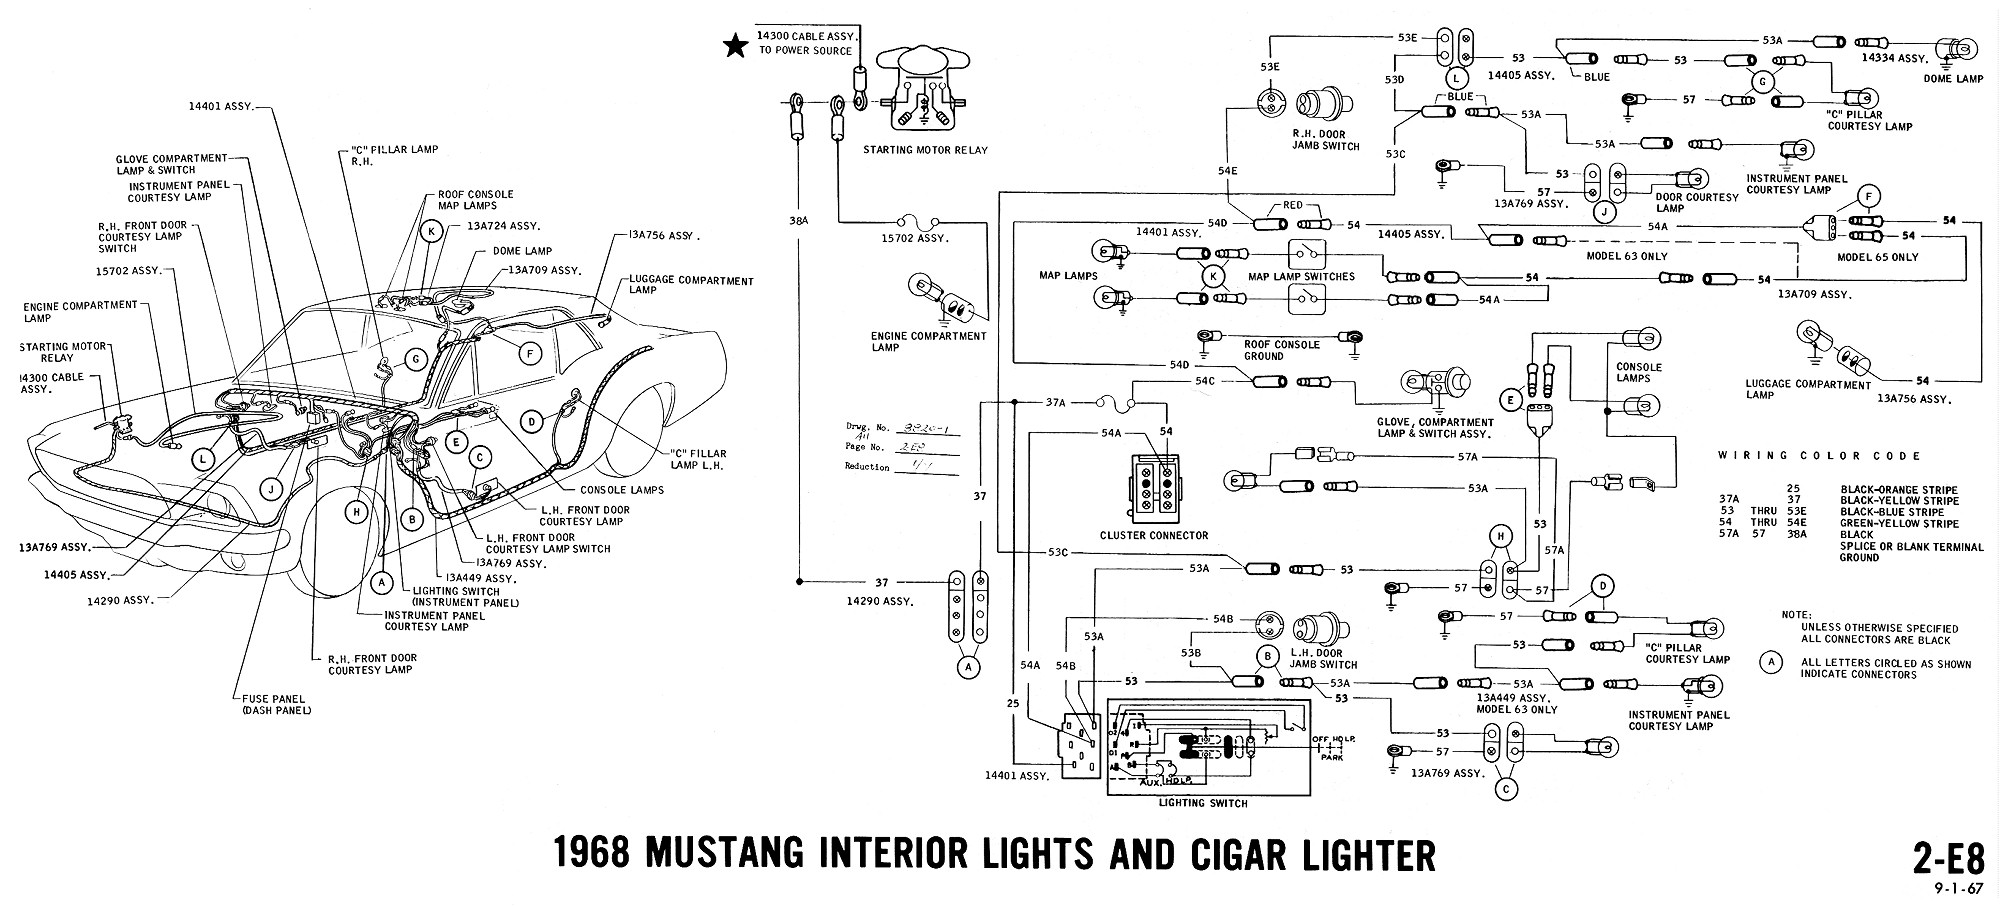 1968 mustang wiring diagram interior lights cigar lighter?resize=665%2C301 wiring diagrams carrier the wiring diagram readingrat net carrier 48es wiring diagram at edmiracle.co